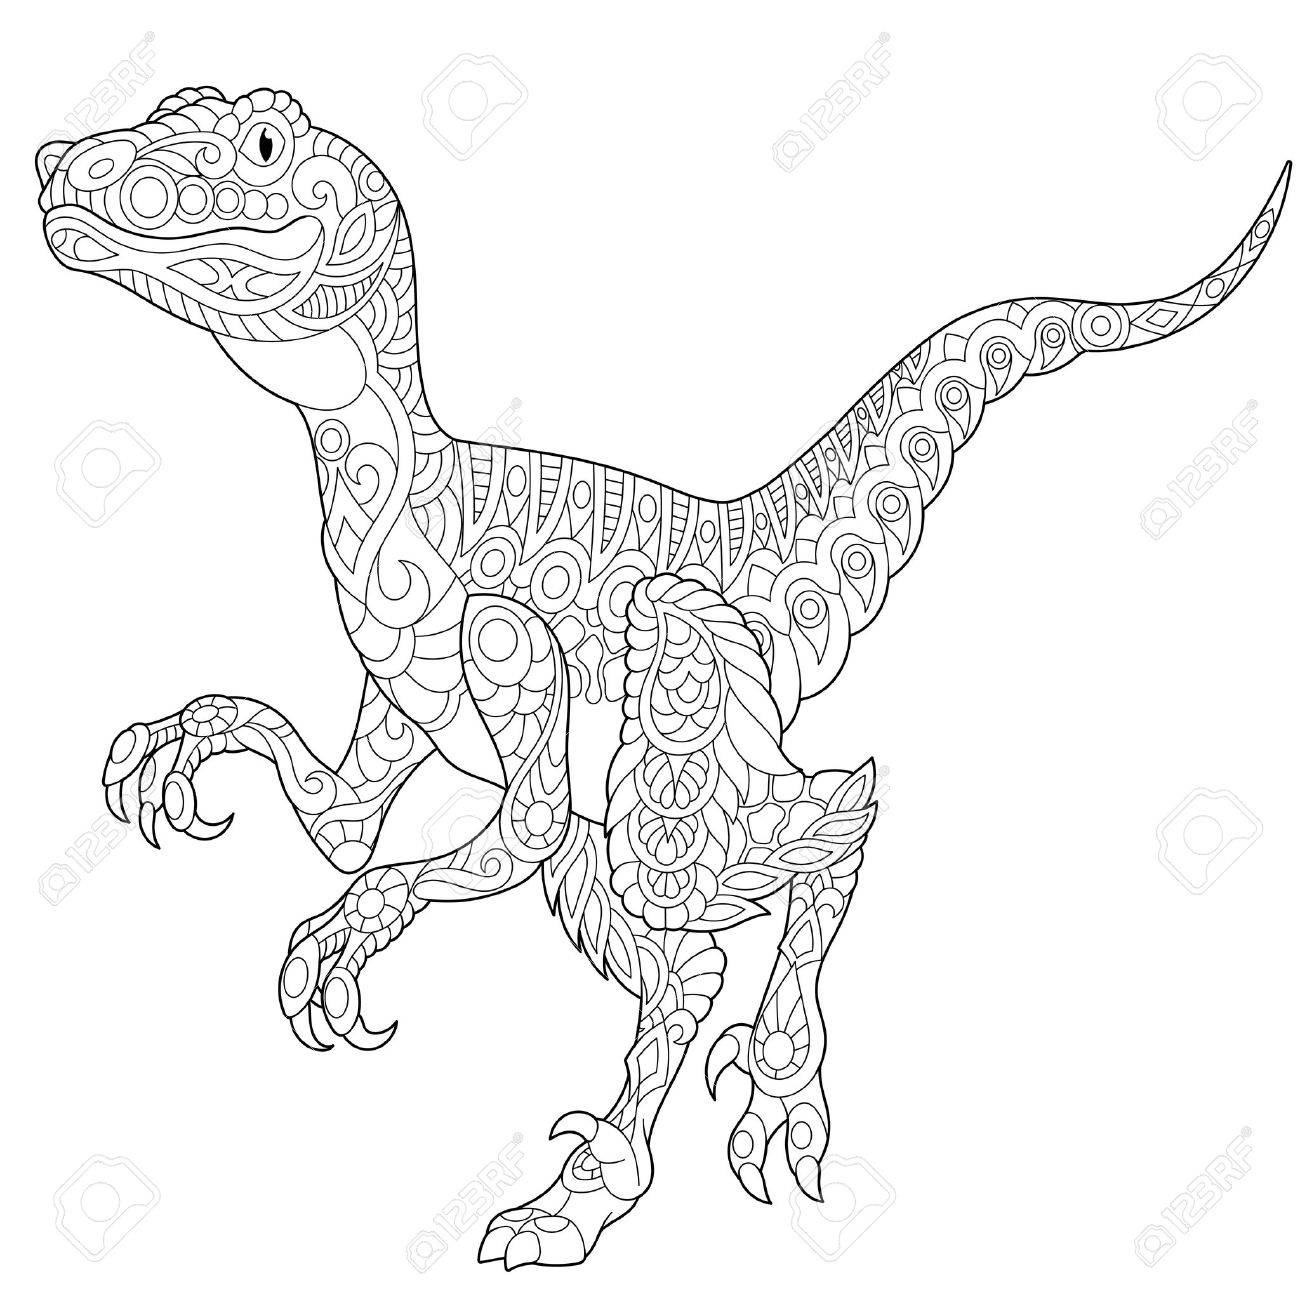 1300x1300 Stylized Velociraptor Dinosaur Of The Late Cretaceous Period